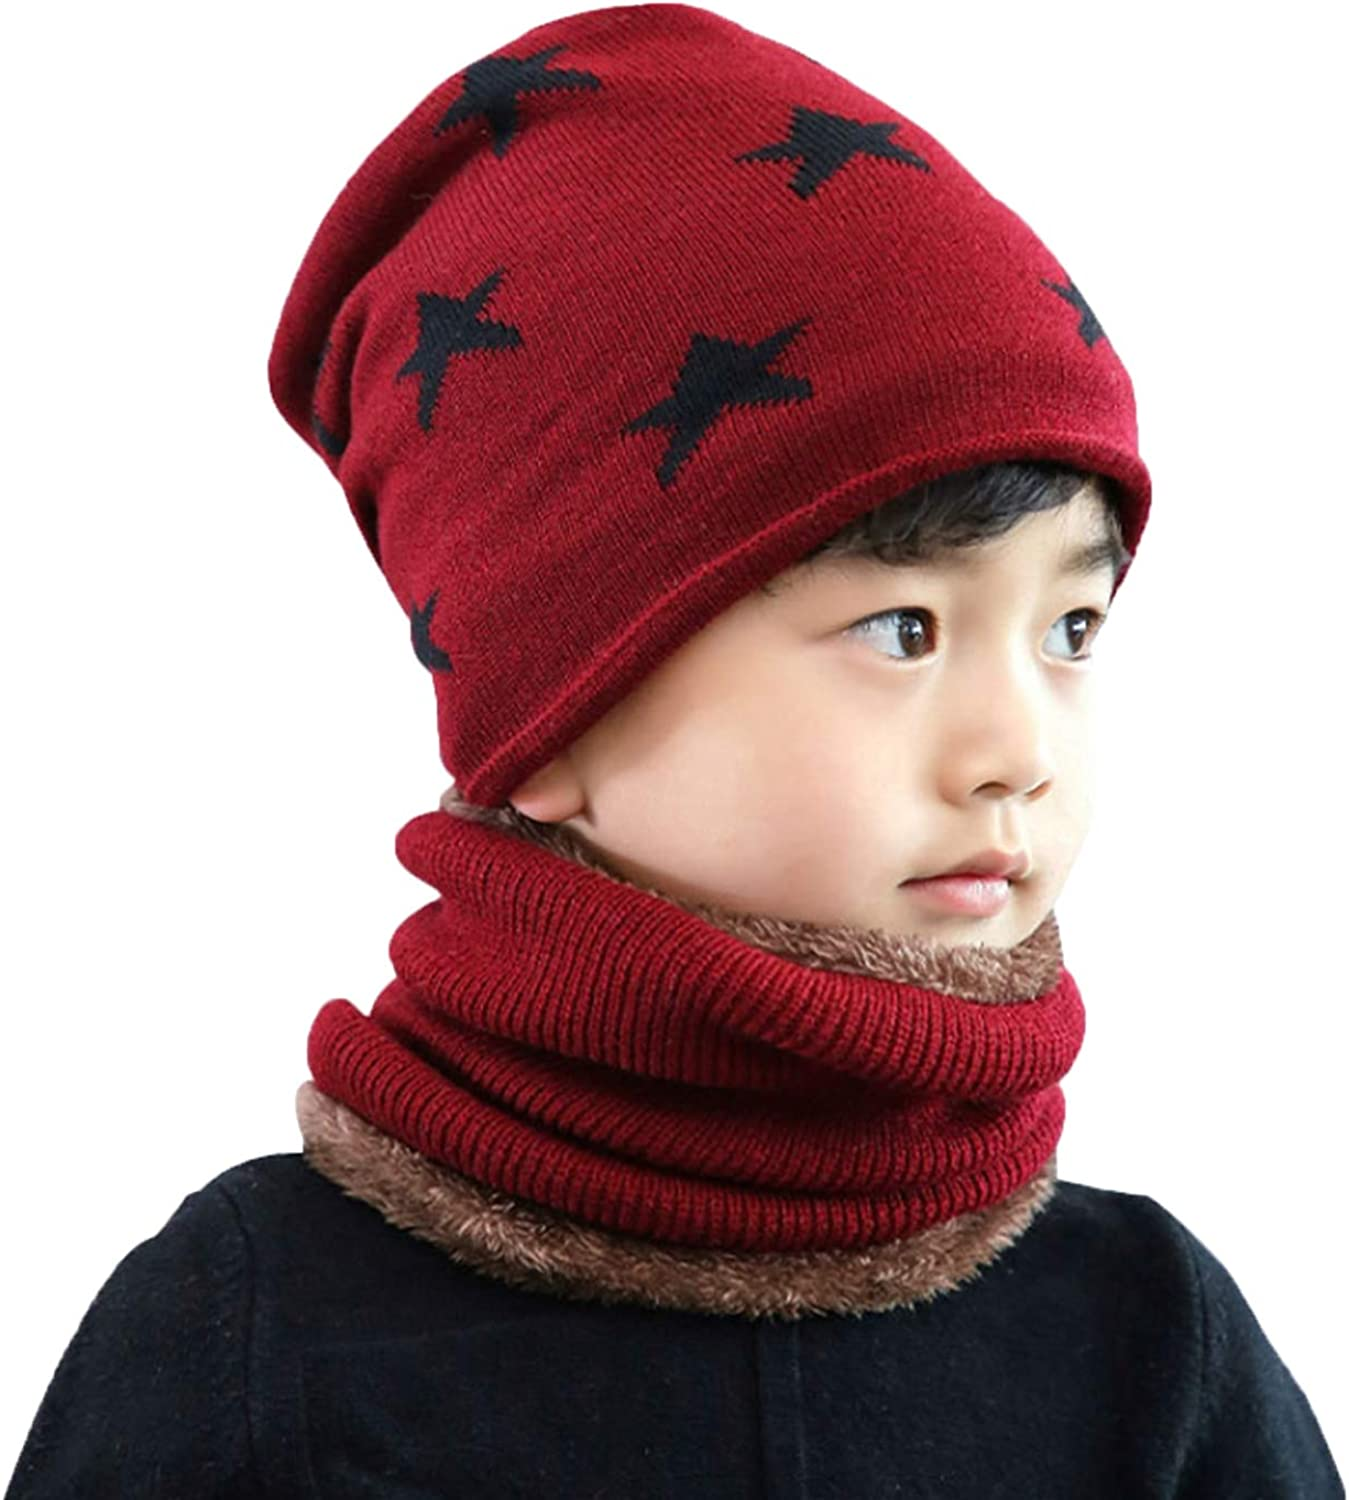 2 in 1 Kids Warm Knitted Beanie Hat and Circle Scarf Set Fleece Lined Thermal Necker Cheif for Boys and Girls